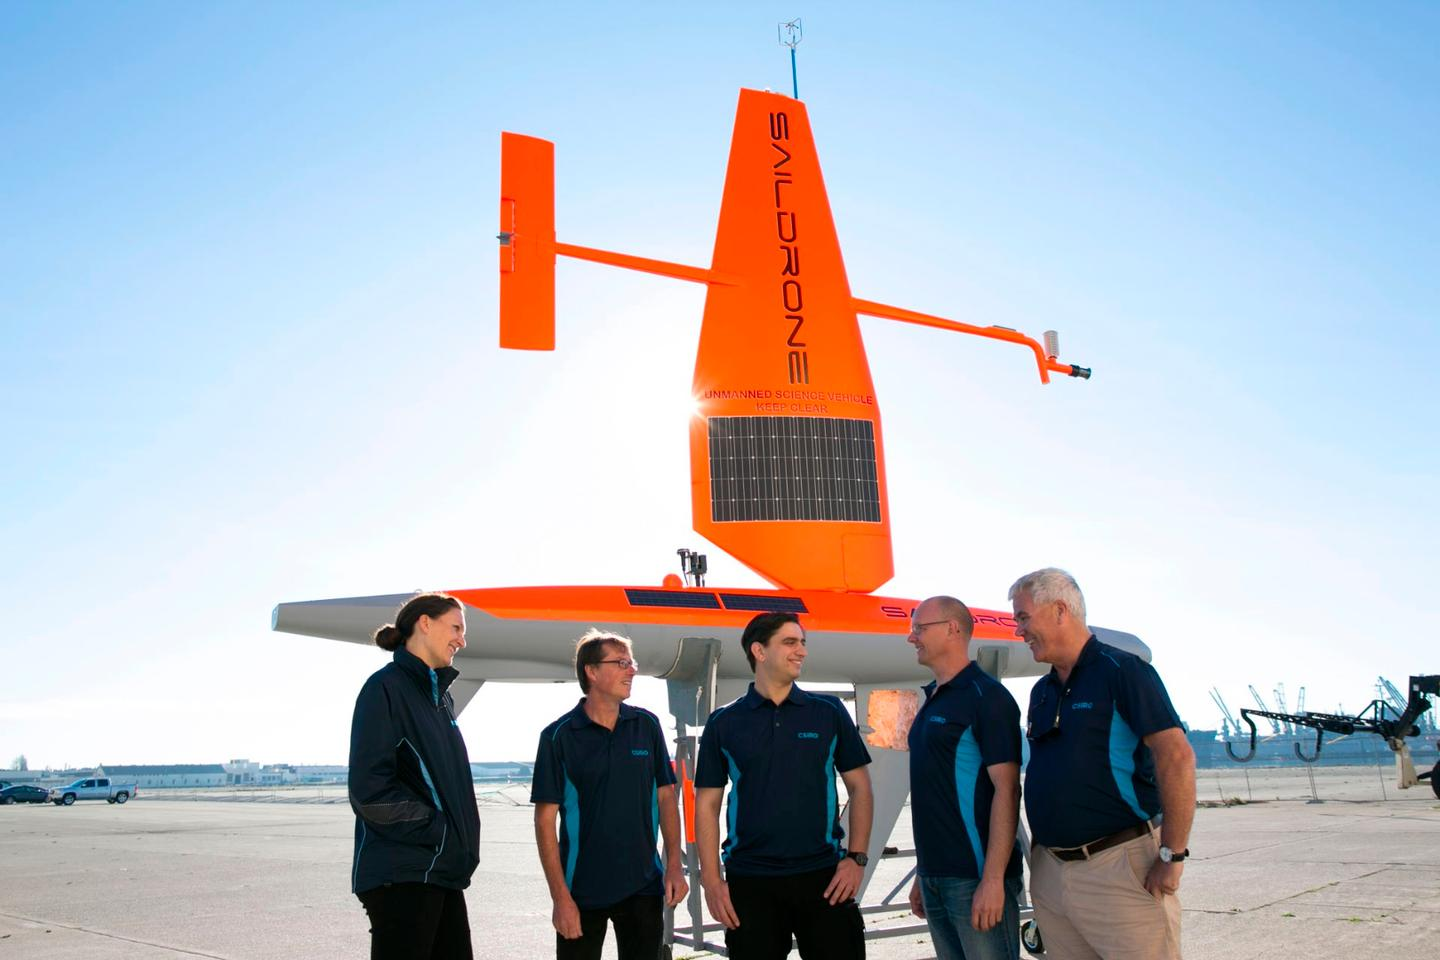 CSIRO team members with a Saildrone